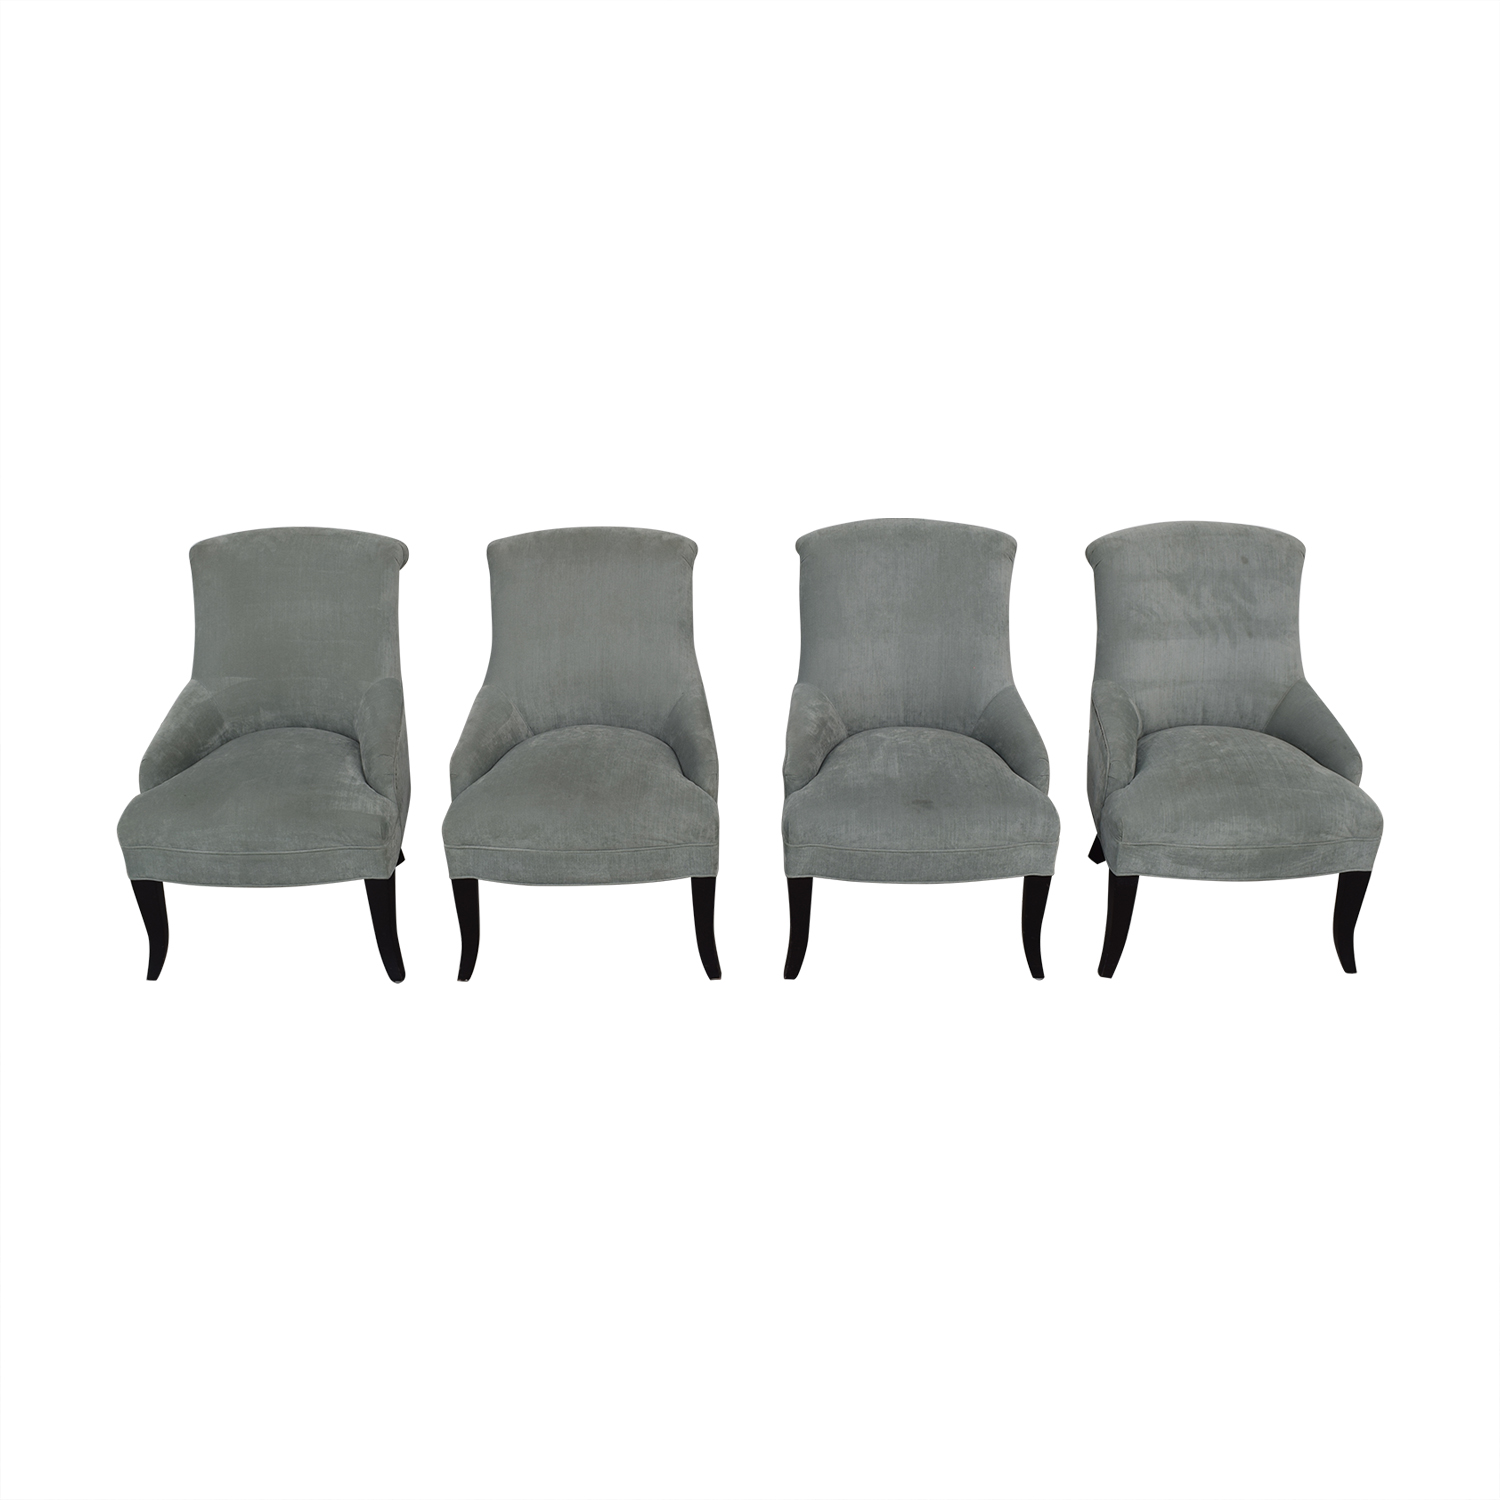 buy Mitchell Gold + Bob Williams Dining Chairs Mitchell Gold + Bob Williams Chairs